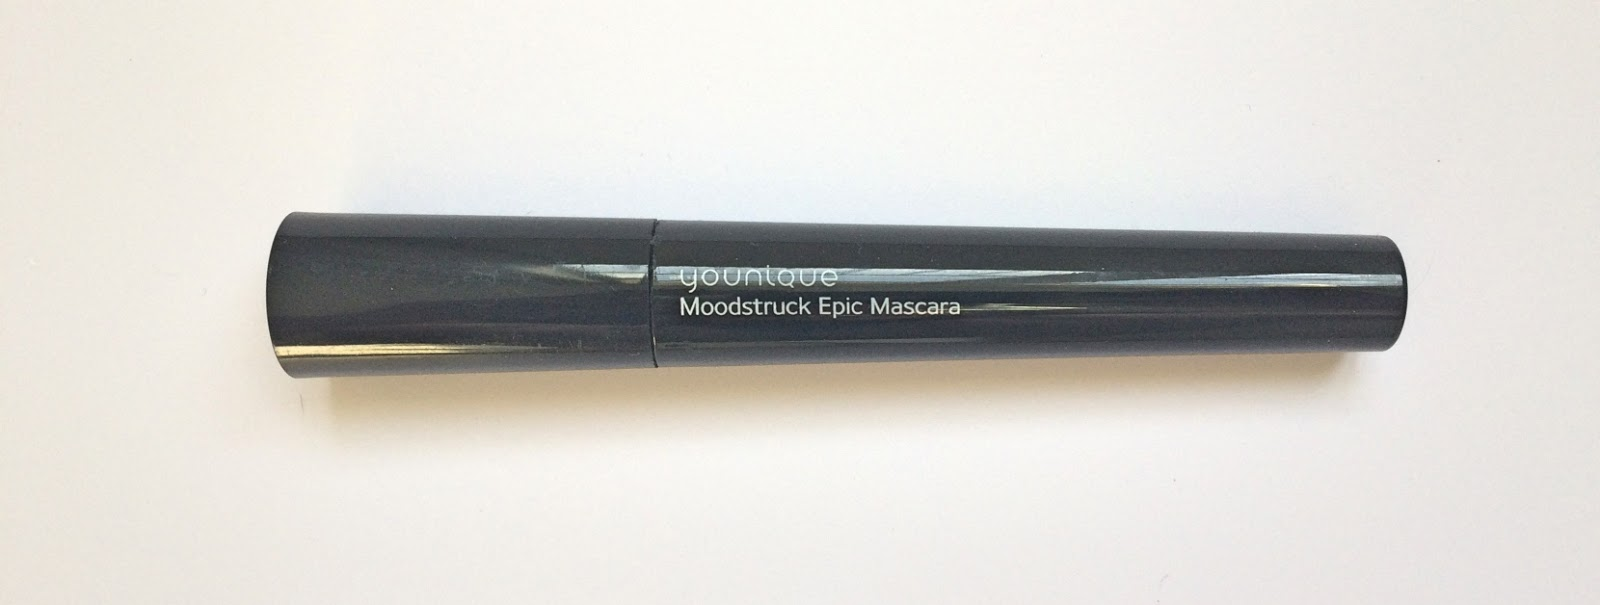 Younique Moodstruck Epic Mascara